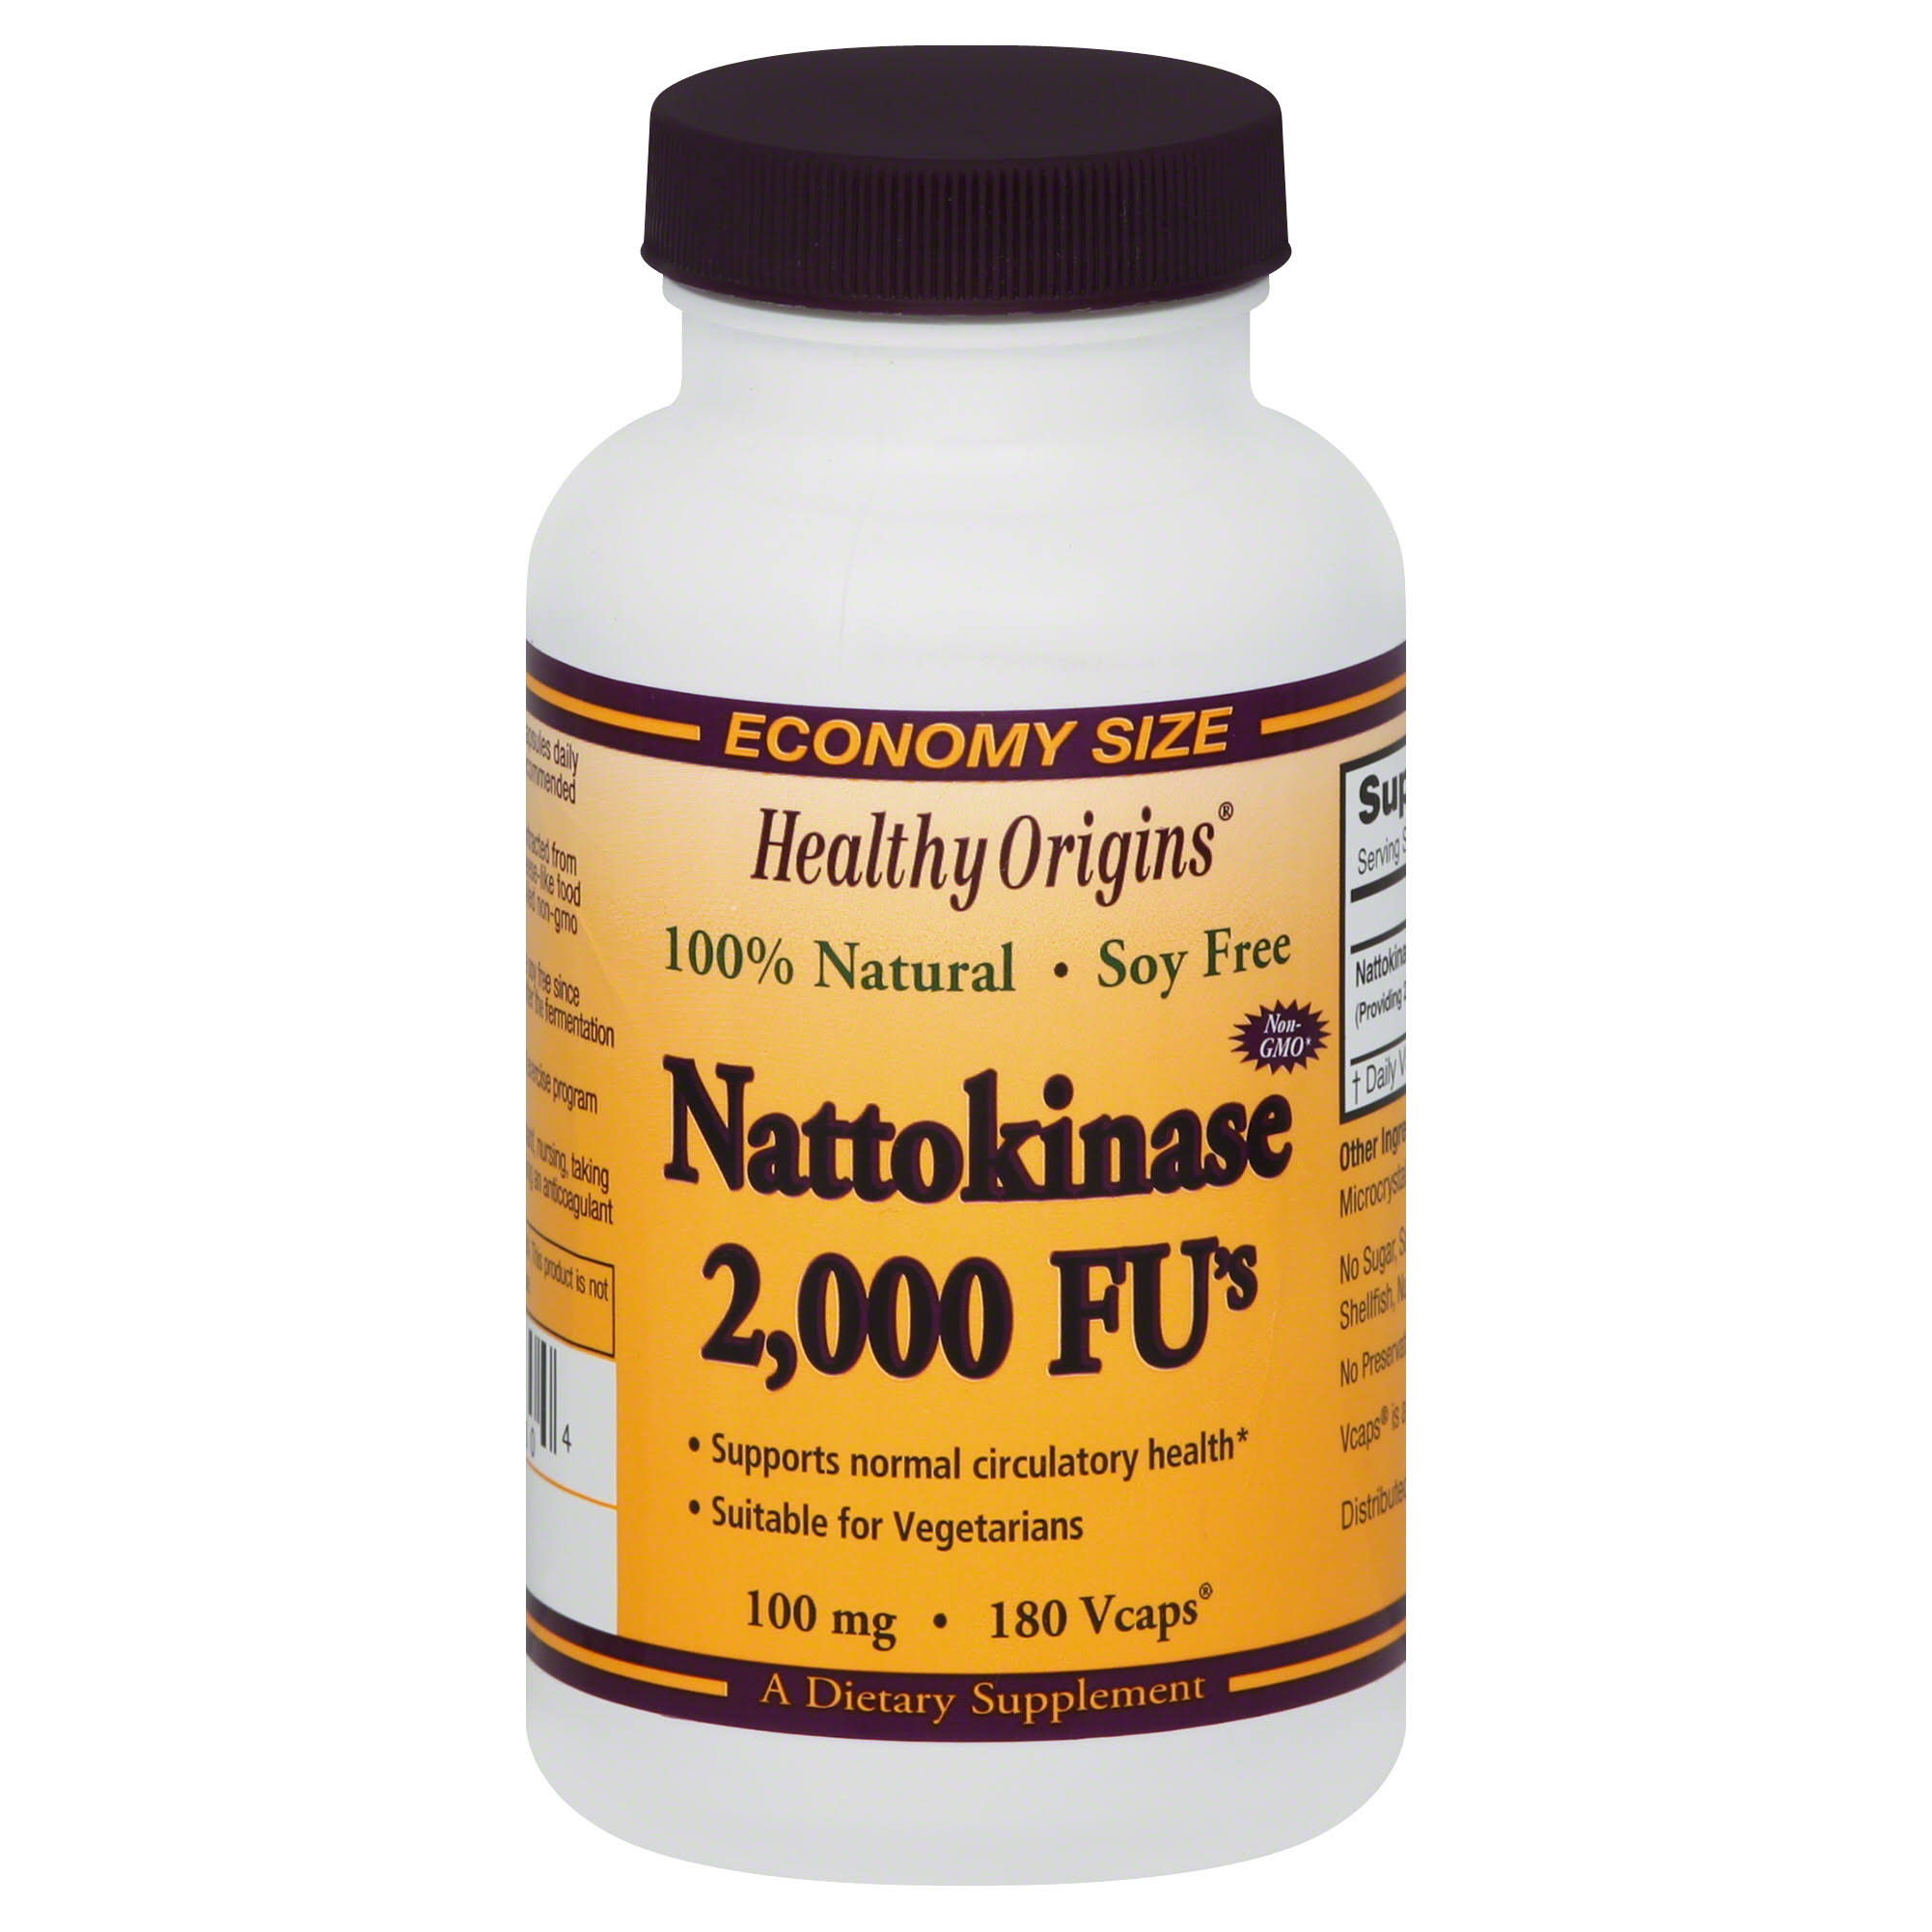 Healthy Origins Nattokinase 2000 FU's Supplement - 100mg, 180 Vcaps